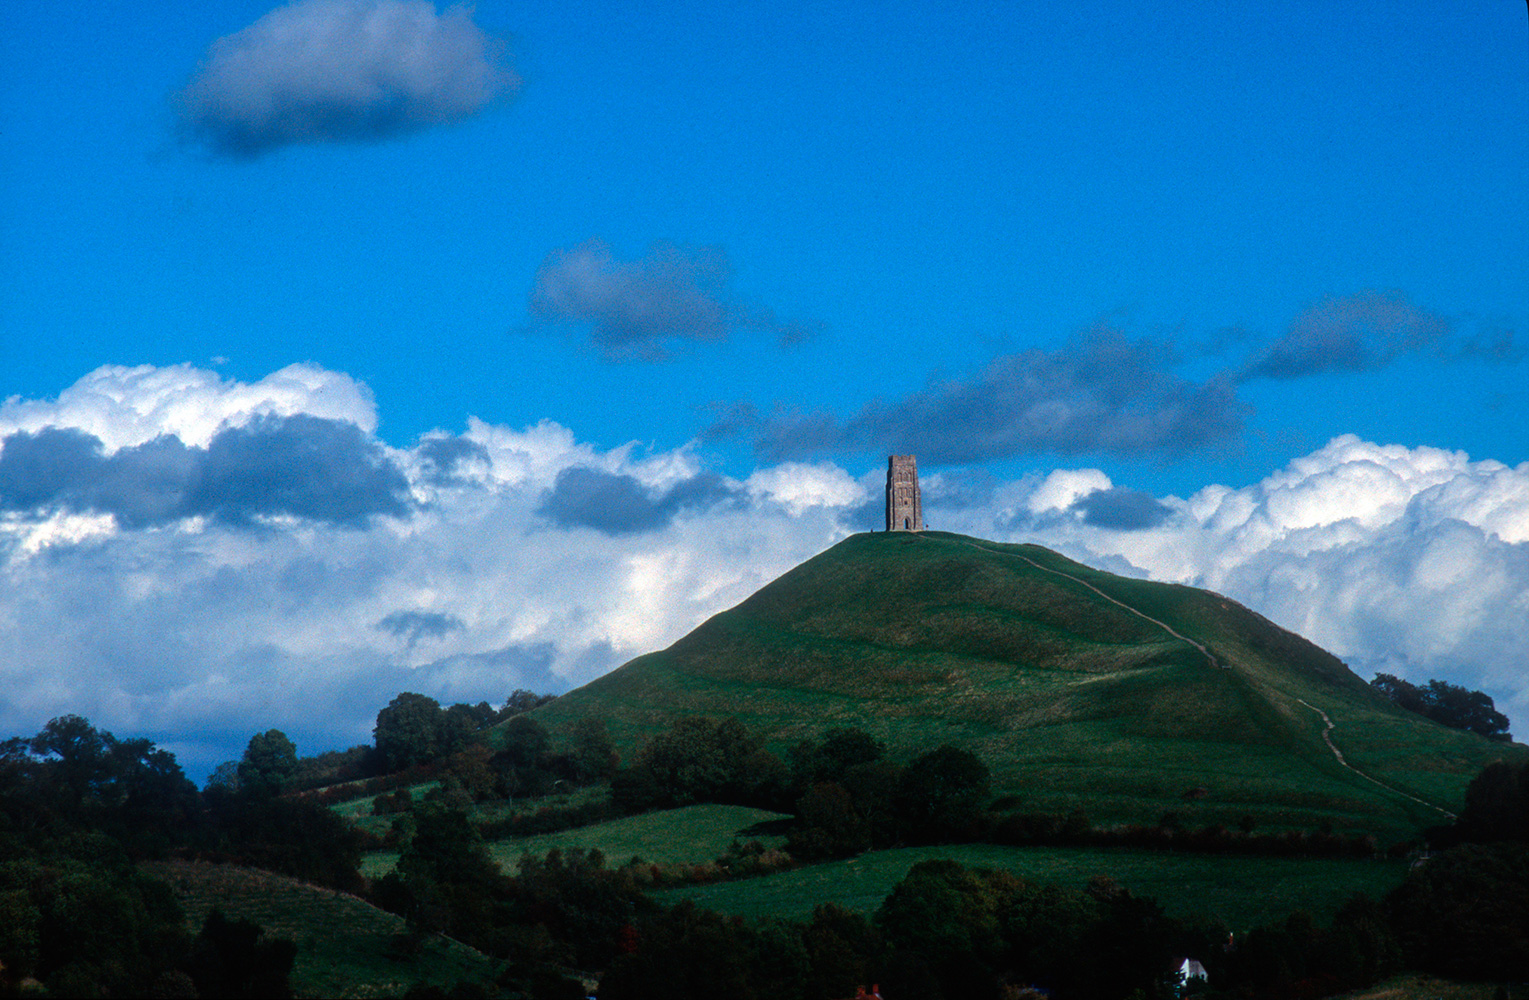 glastonbury_tor_02